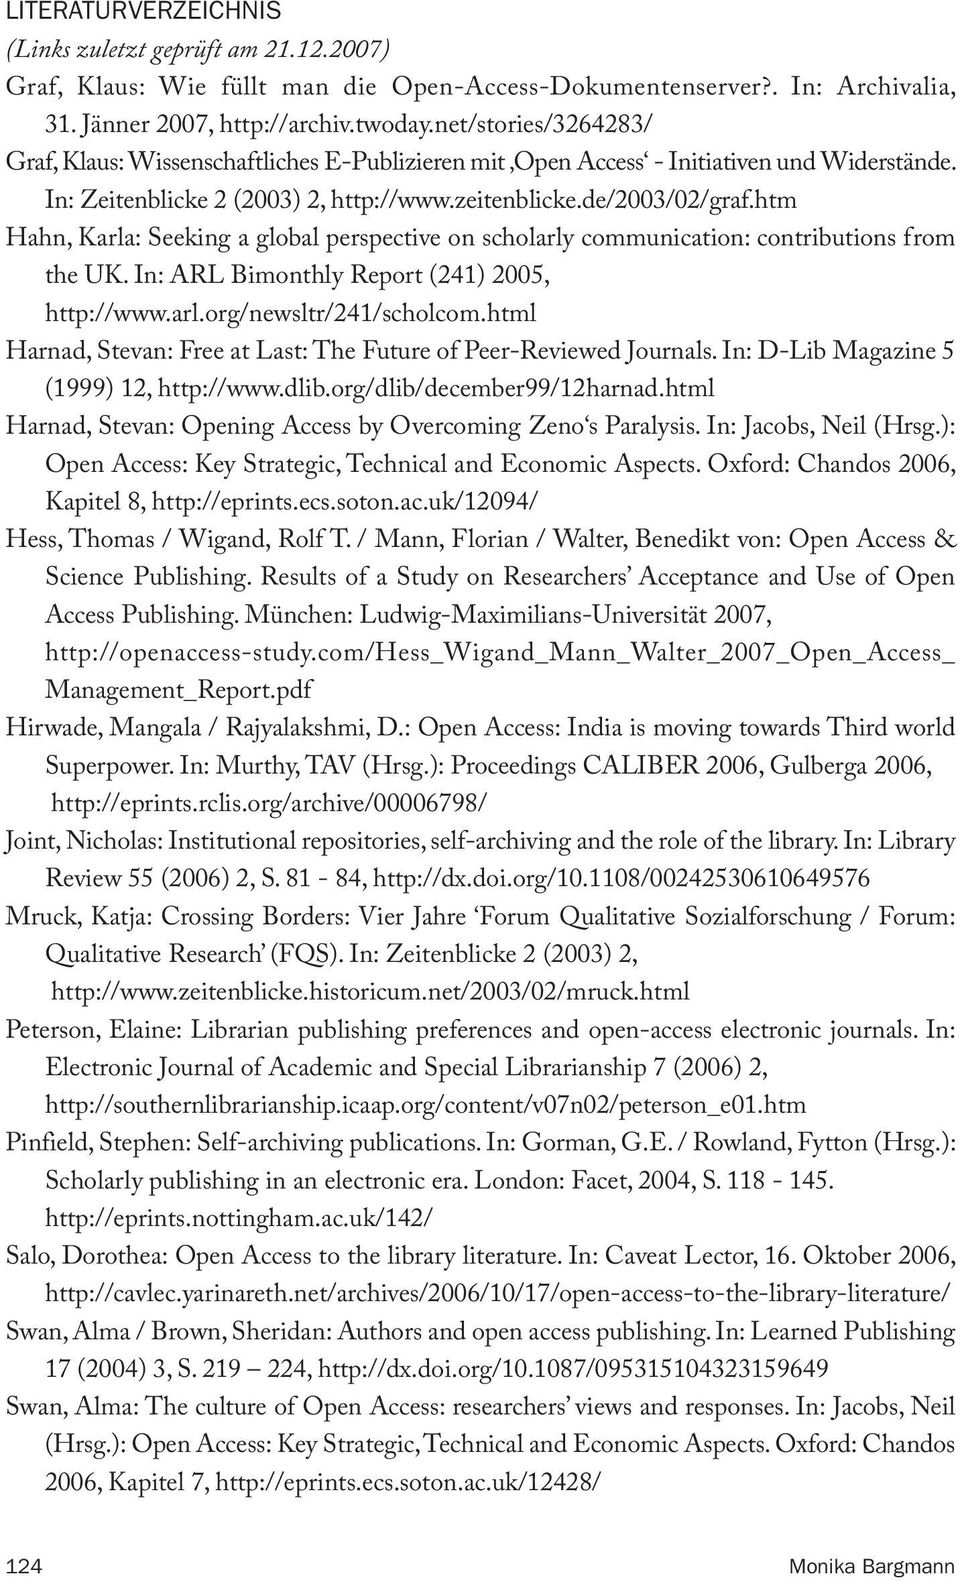 htm Hahn, Karla: Seeking a global perspective on scholarly communication: contributions from the UK. In: ARL Bimonthly Report (241) 2005, http://www.arl.org/newsltr/241/scholcom.